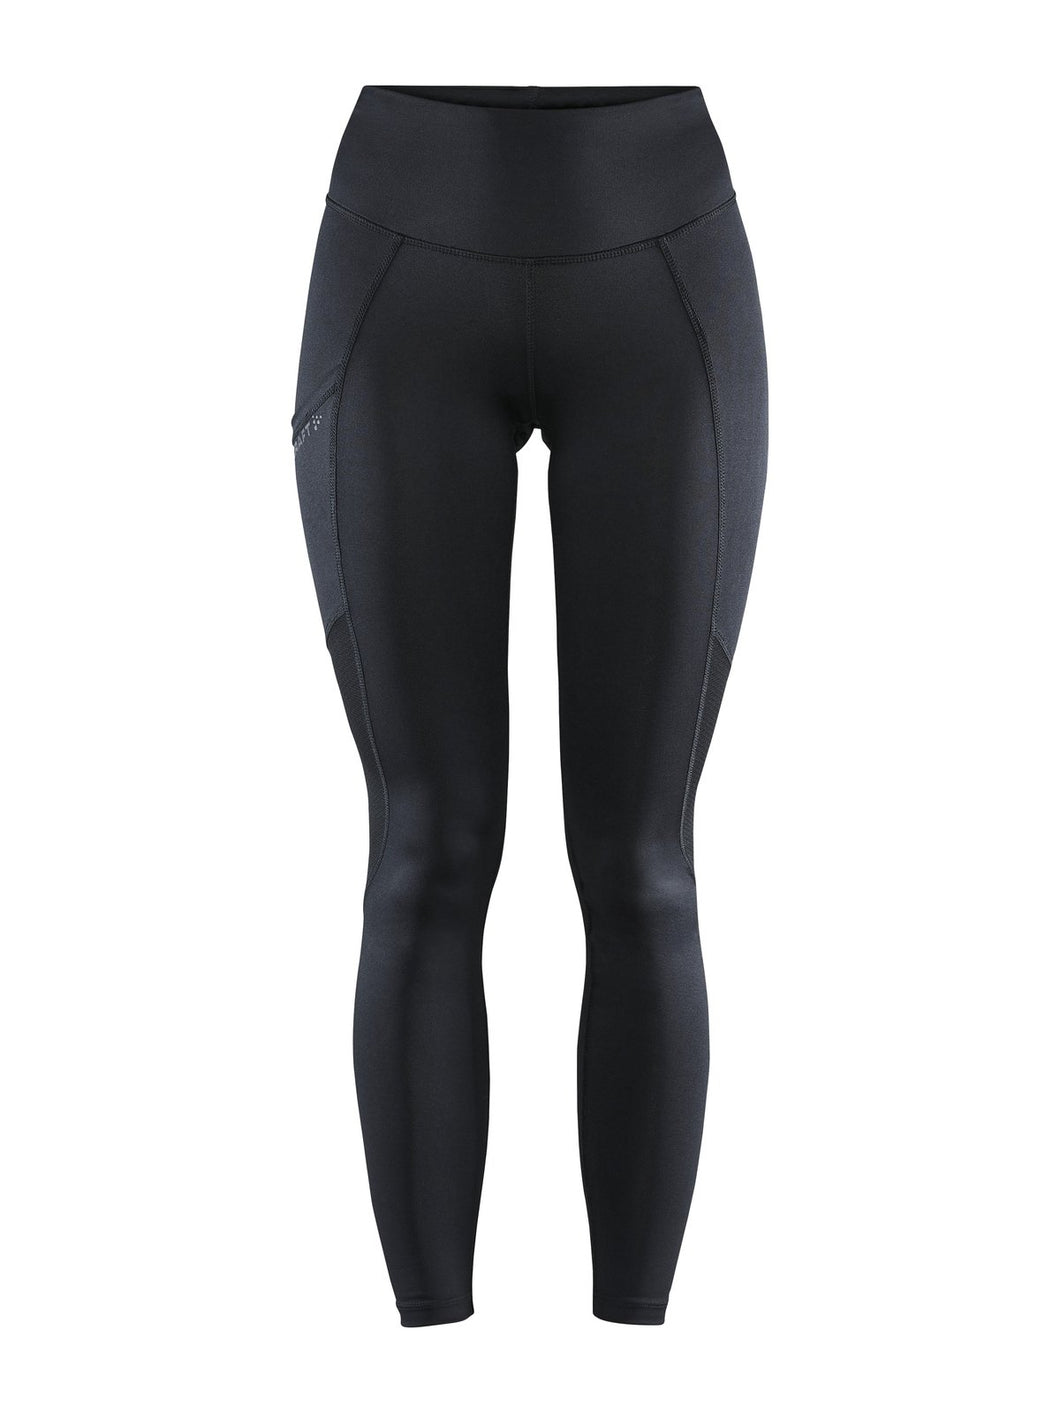 Adv Essence Tight - Women's